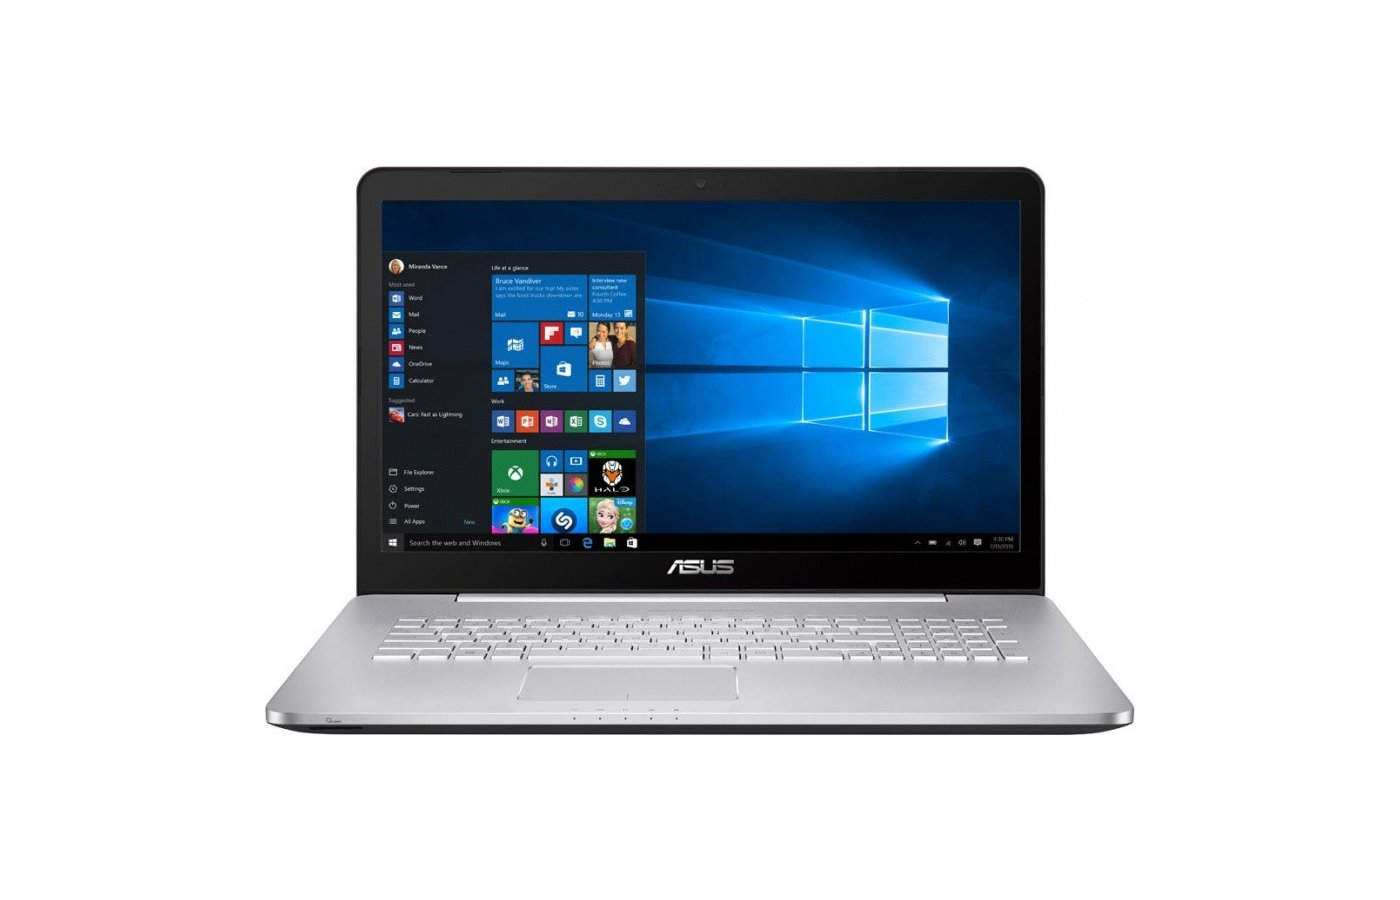 Ноутбук ASUS N752VX-GC277T /90NB0AY1-M03350/ intel i7 6700HQ/16Gb/1000Gb/DvDRW/GTX 950M 4Gb/17.3FHD/WiFi/Win